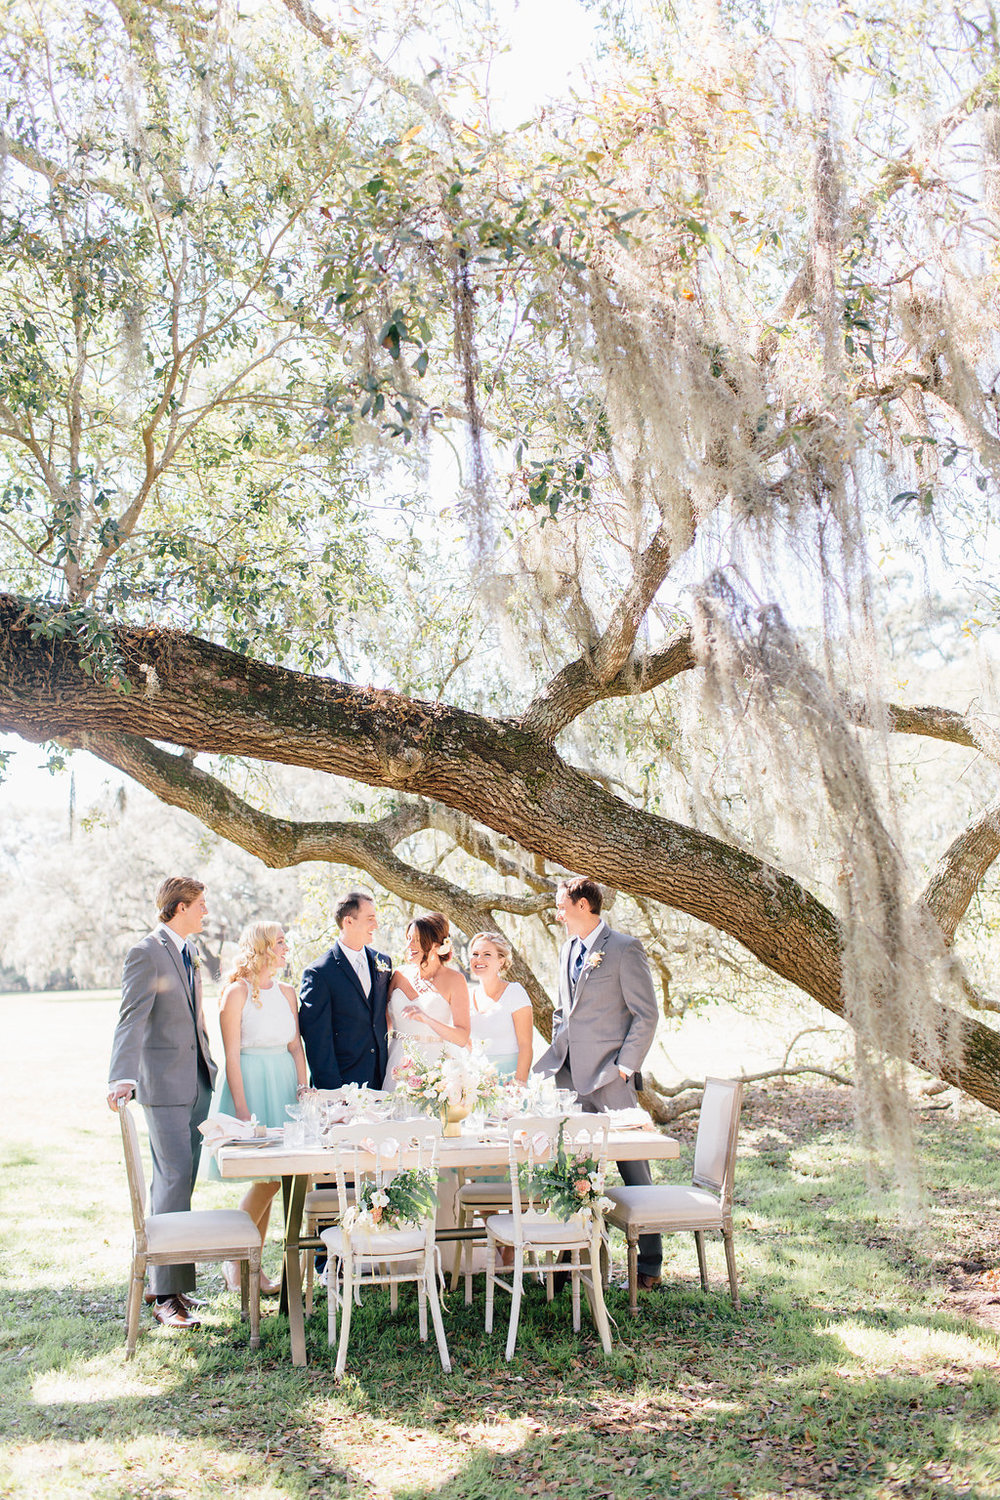 hannah-lane-photography-southern-weddings-blog-charleson-wedding-charleston-styled-shoot-ivory-and-beau-bridal-boutique-blush-by-hayley-paige-candi-blush-tulle-wedding-dress-savannah-bridal-boutique-savannah-wedding-dresses-rosegold-sash-8.jpg